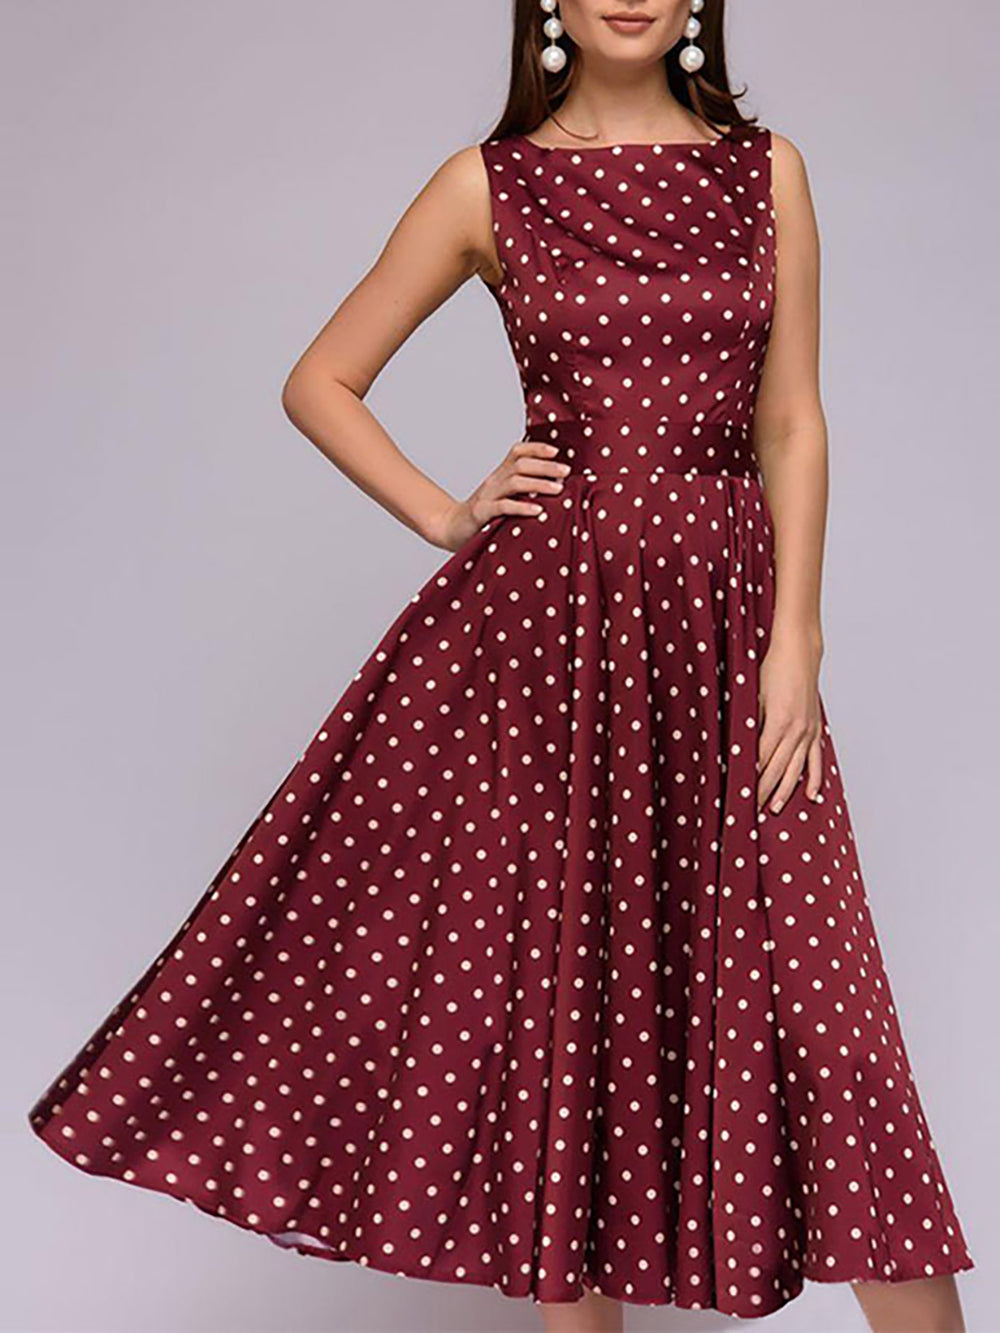 Polka Dots Square Neck Red Swing Party Sexy Midi Dress With Belt